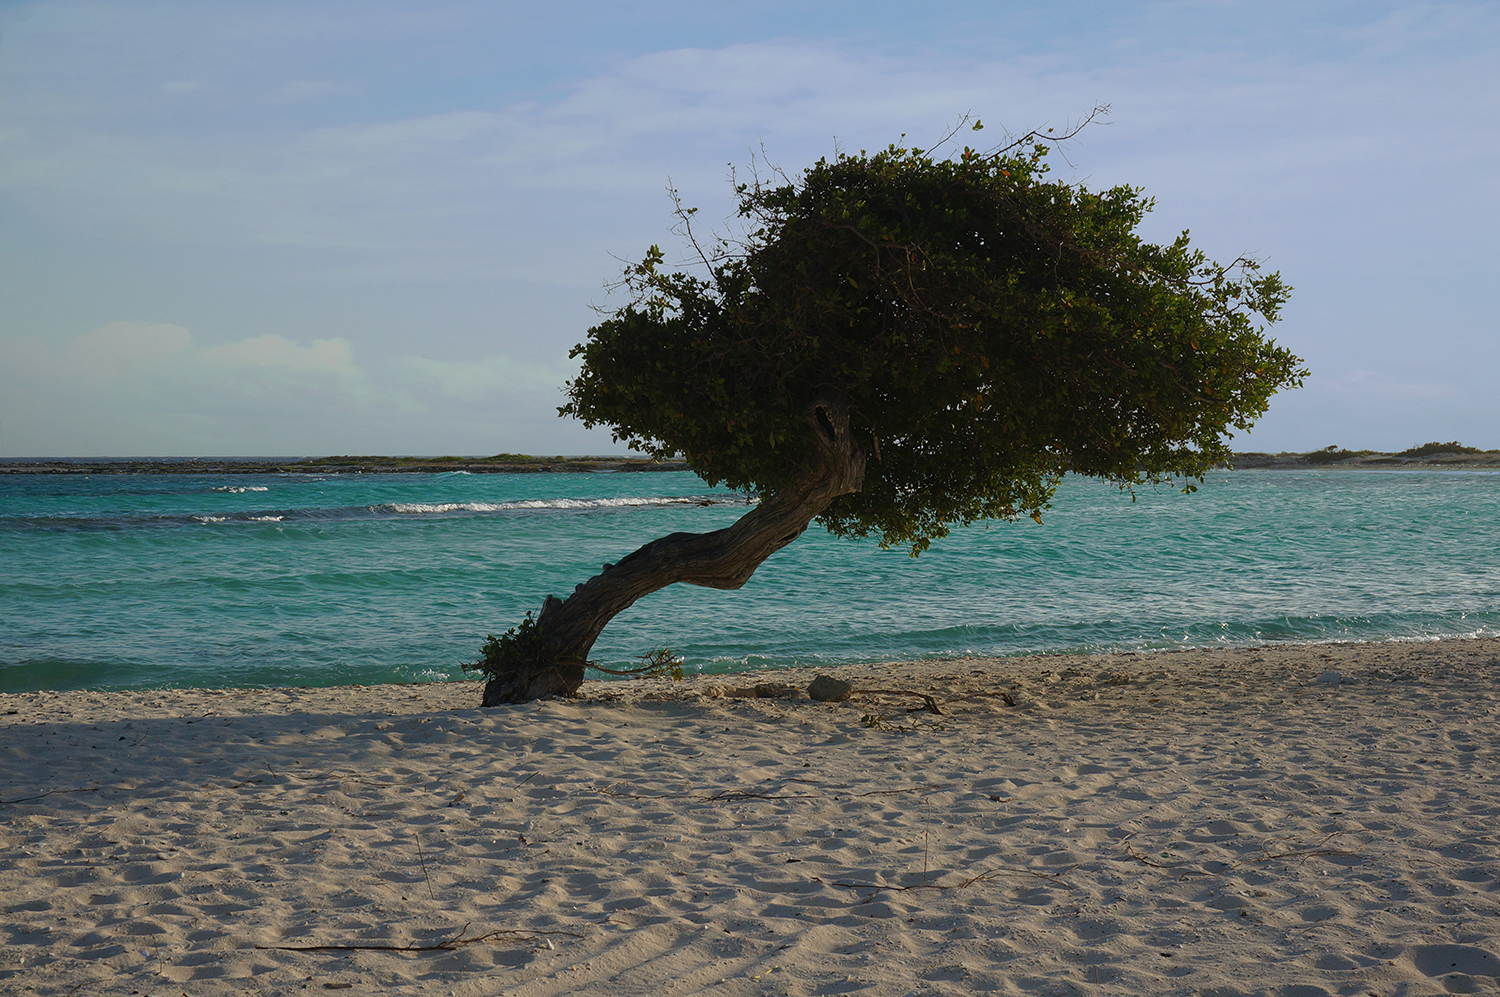 Divi tree, typical of Aruba